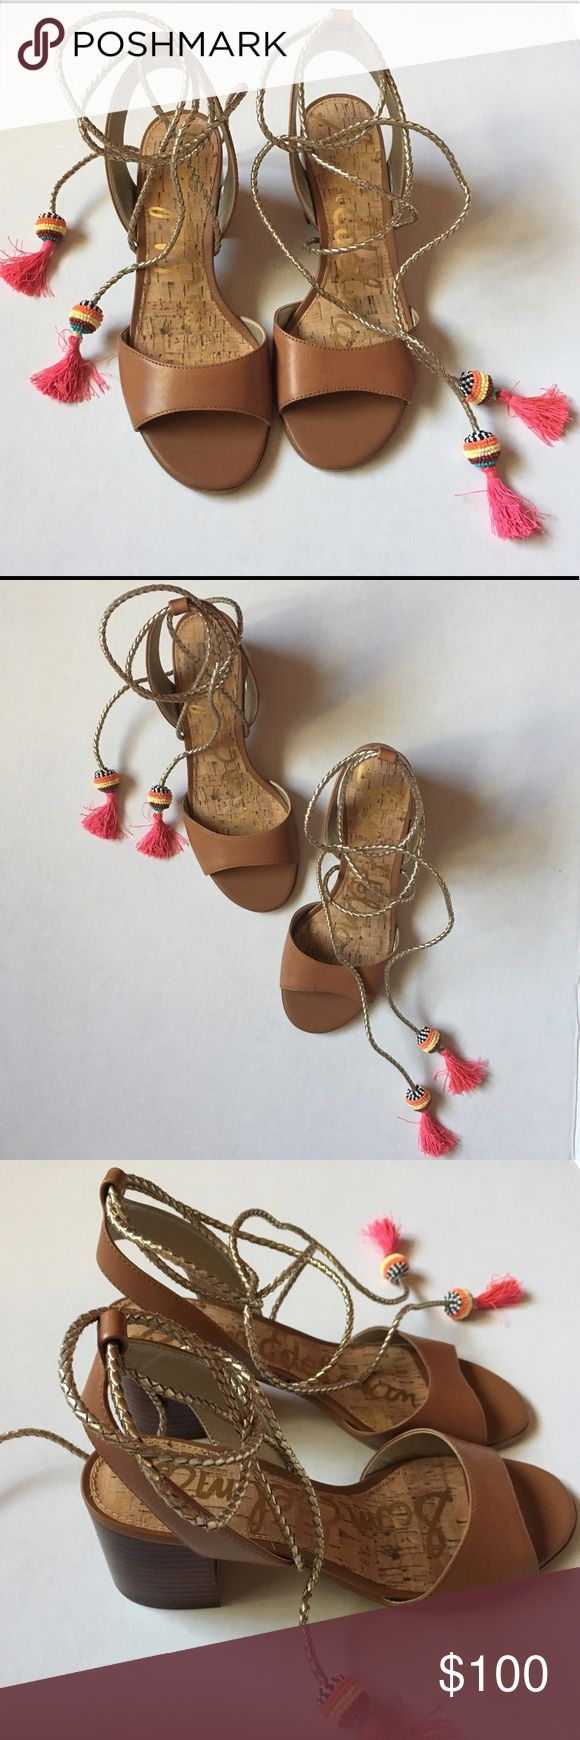 """Sam Edelman Shani Block Heel Sandals Tan Wrap Tie Sam Edelman Shani Saddle Leather Sandals  These super cute pair of Sandals feature a block heel w/ Metallic Ankle Wrap! Adorned with Vibrant pink tassels and multi color beaded accents! These shoes scream summer vibes!  Perfect for a day date or brunch near the beach! Tip: paired with a wide brim hat and an off-the shoulder dress! You will be looking summer chic!  Condition: Brand New with Box! Measurements: Size: 7.5M Heel: Approx 2.5""""…"""